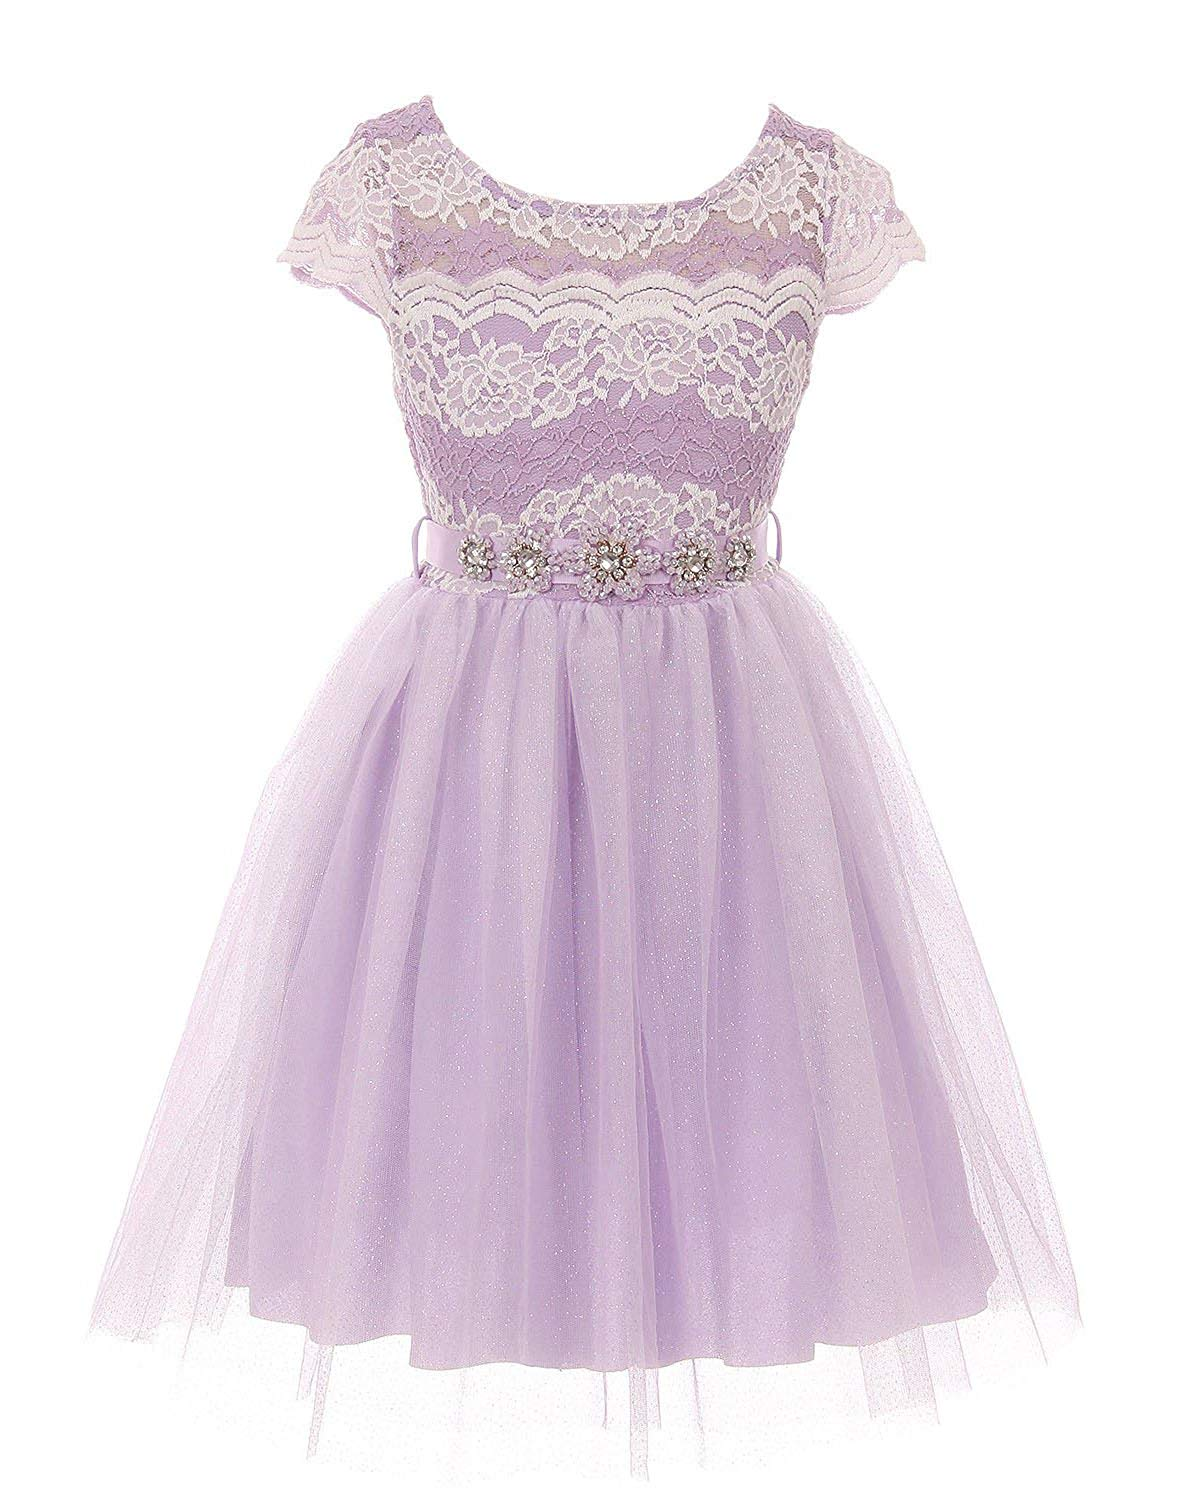 35b2ff1e9a4 Get Quotations · iGirldress Girls Floral Lace Tulle Skirt Holiday Party  Graduation Flower Girl Dress 4-14